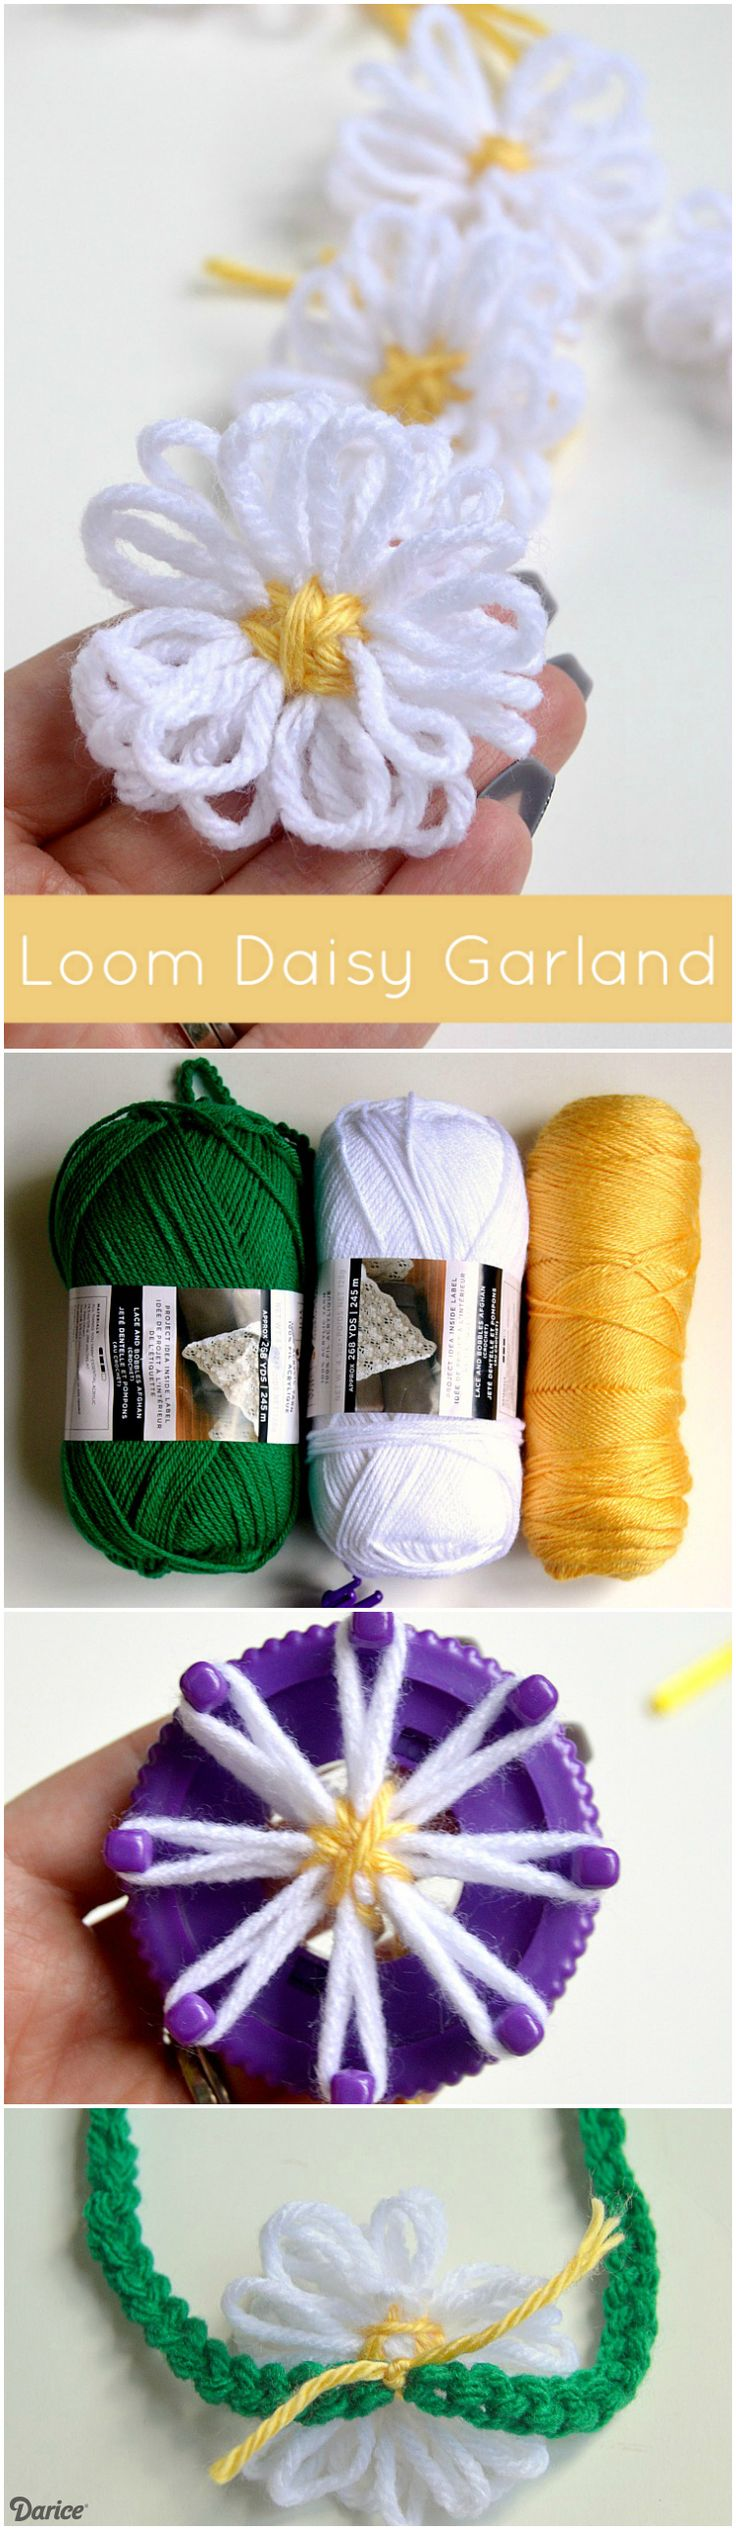 Learn how to make DIY yarn flowers using a mini loom knitter. Then decorate a crocheted spring garland with your darling loom daisies.